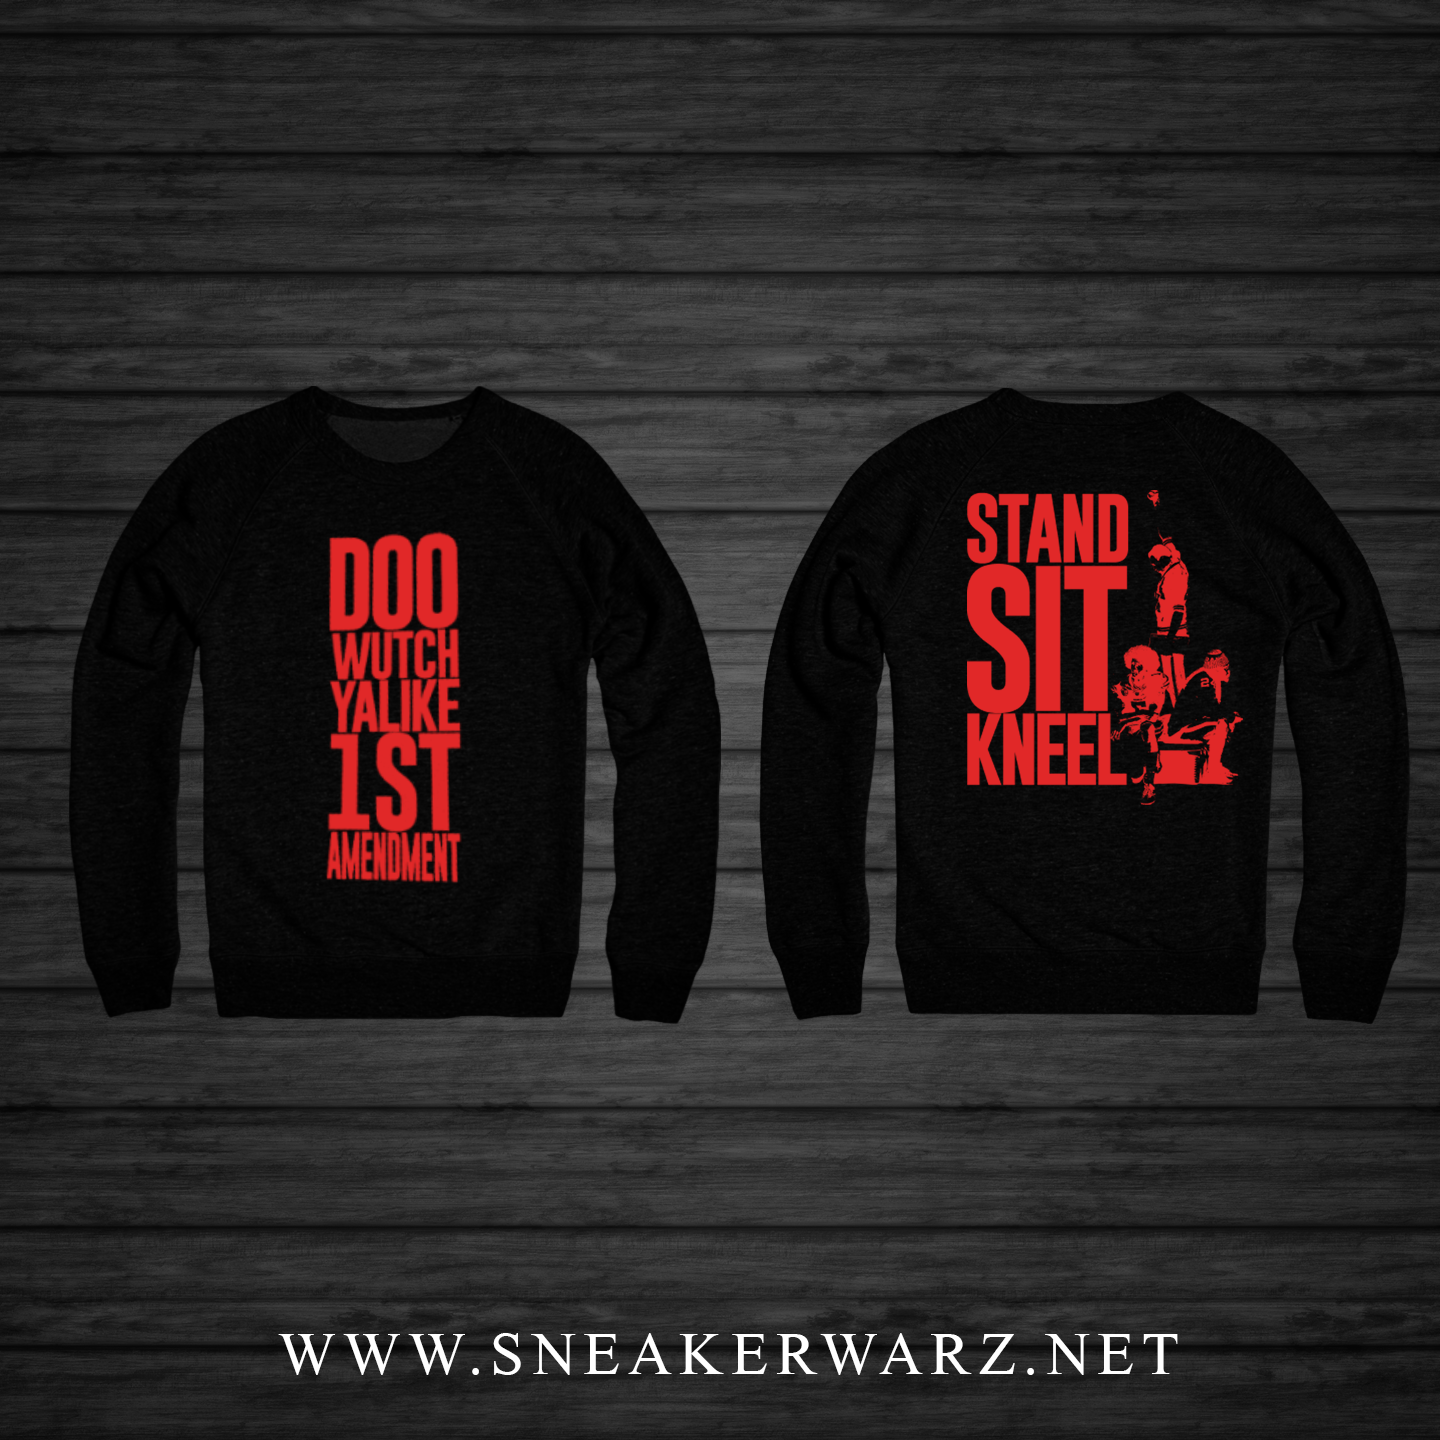 1st Amendment (Black/Red Crewneck)